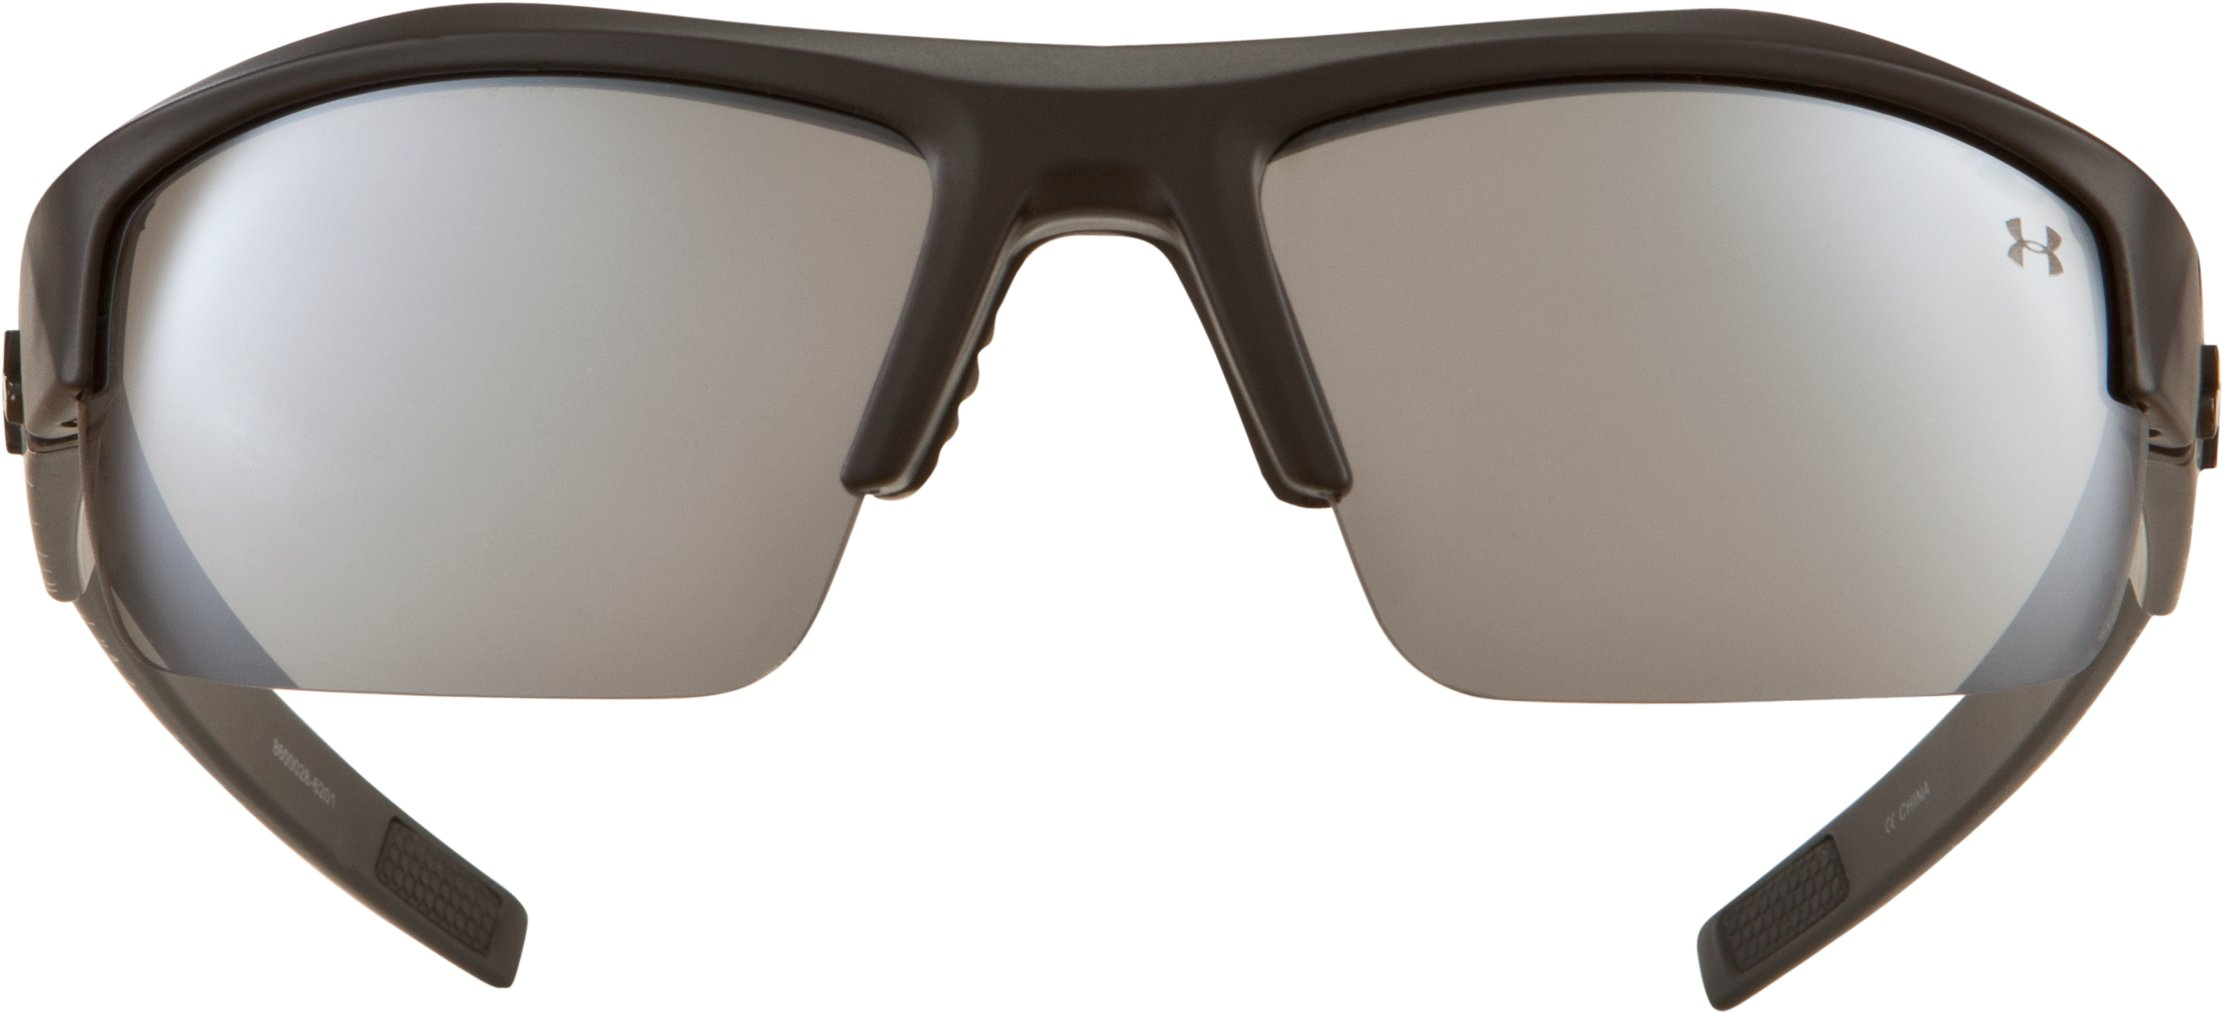 UA Igniter Multiflection™ Sunglasses, Satin Black With Print